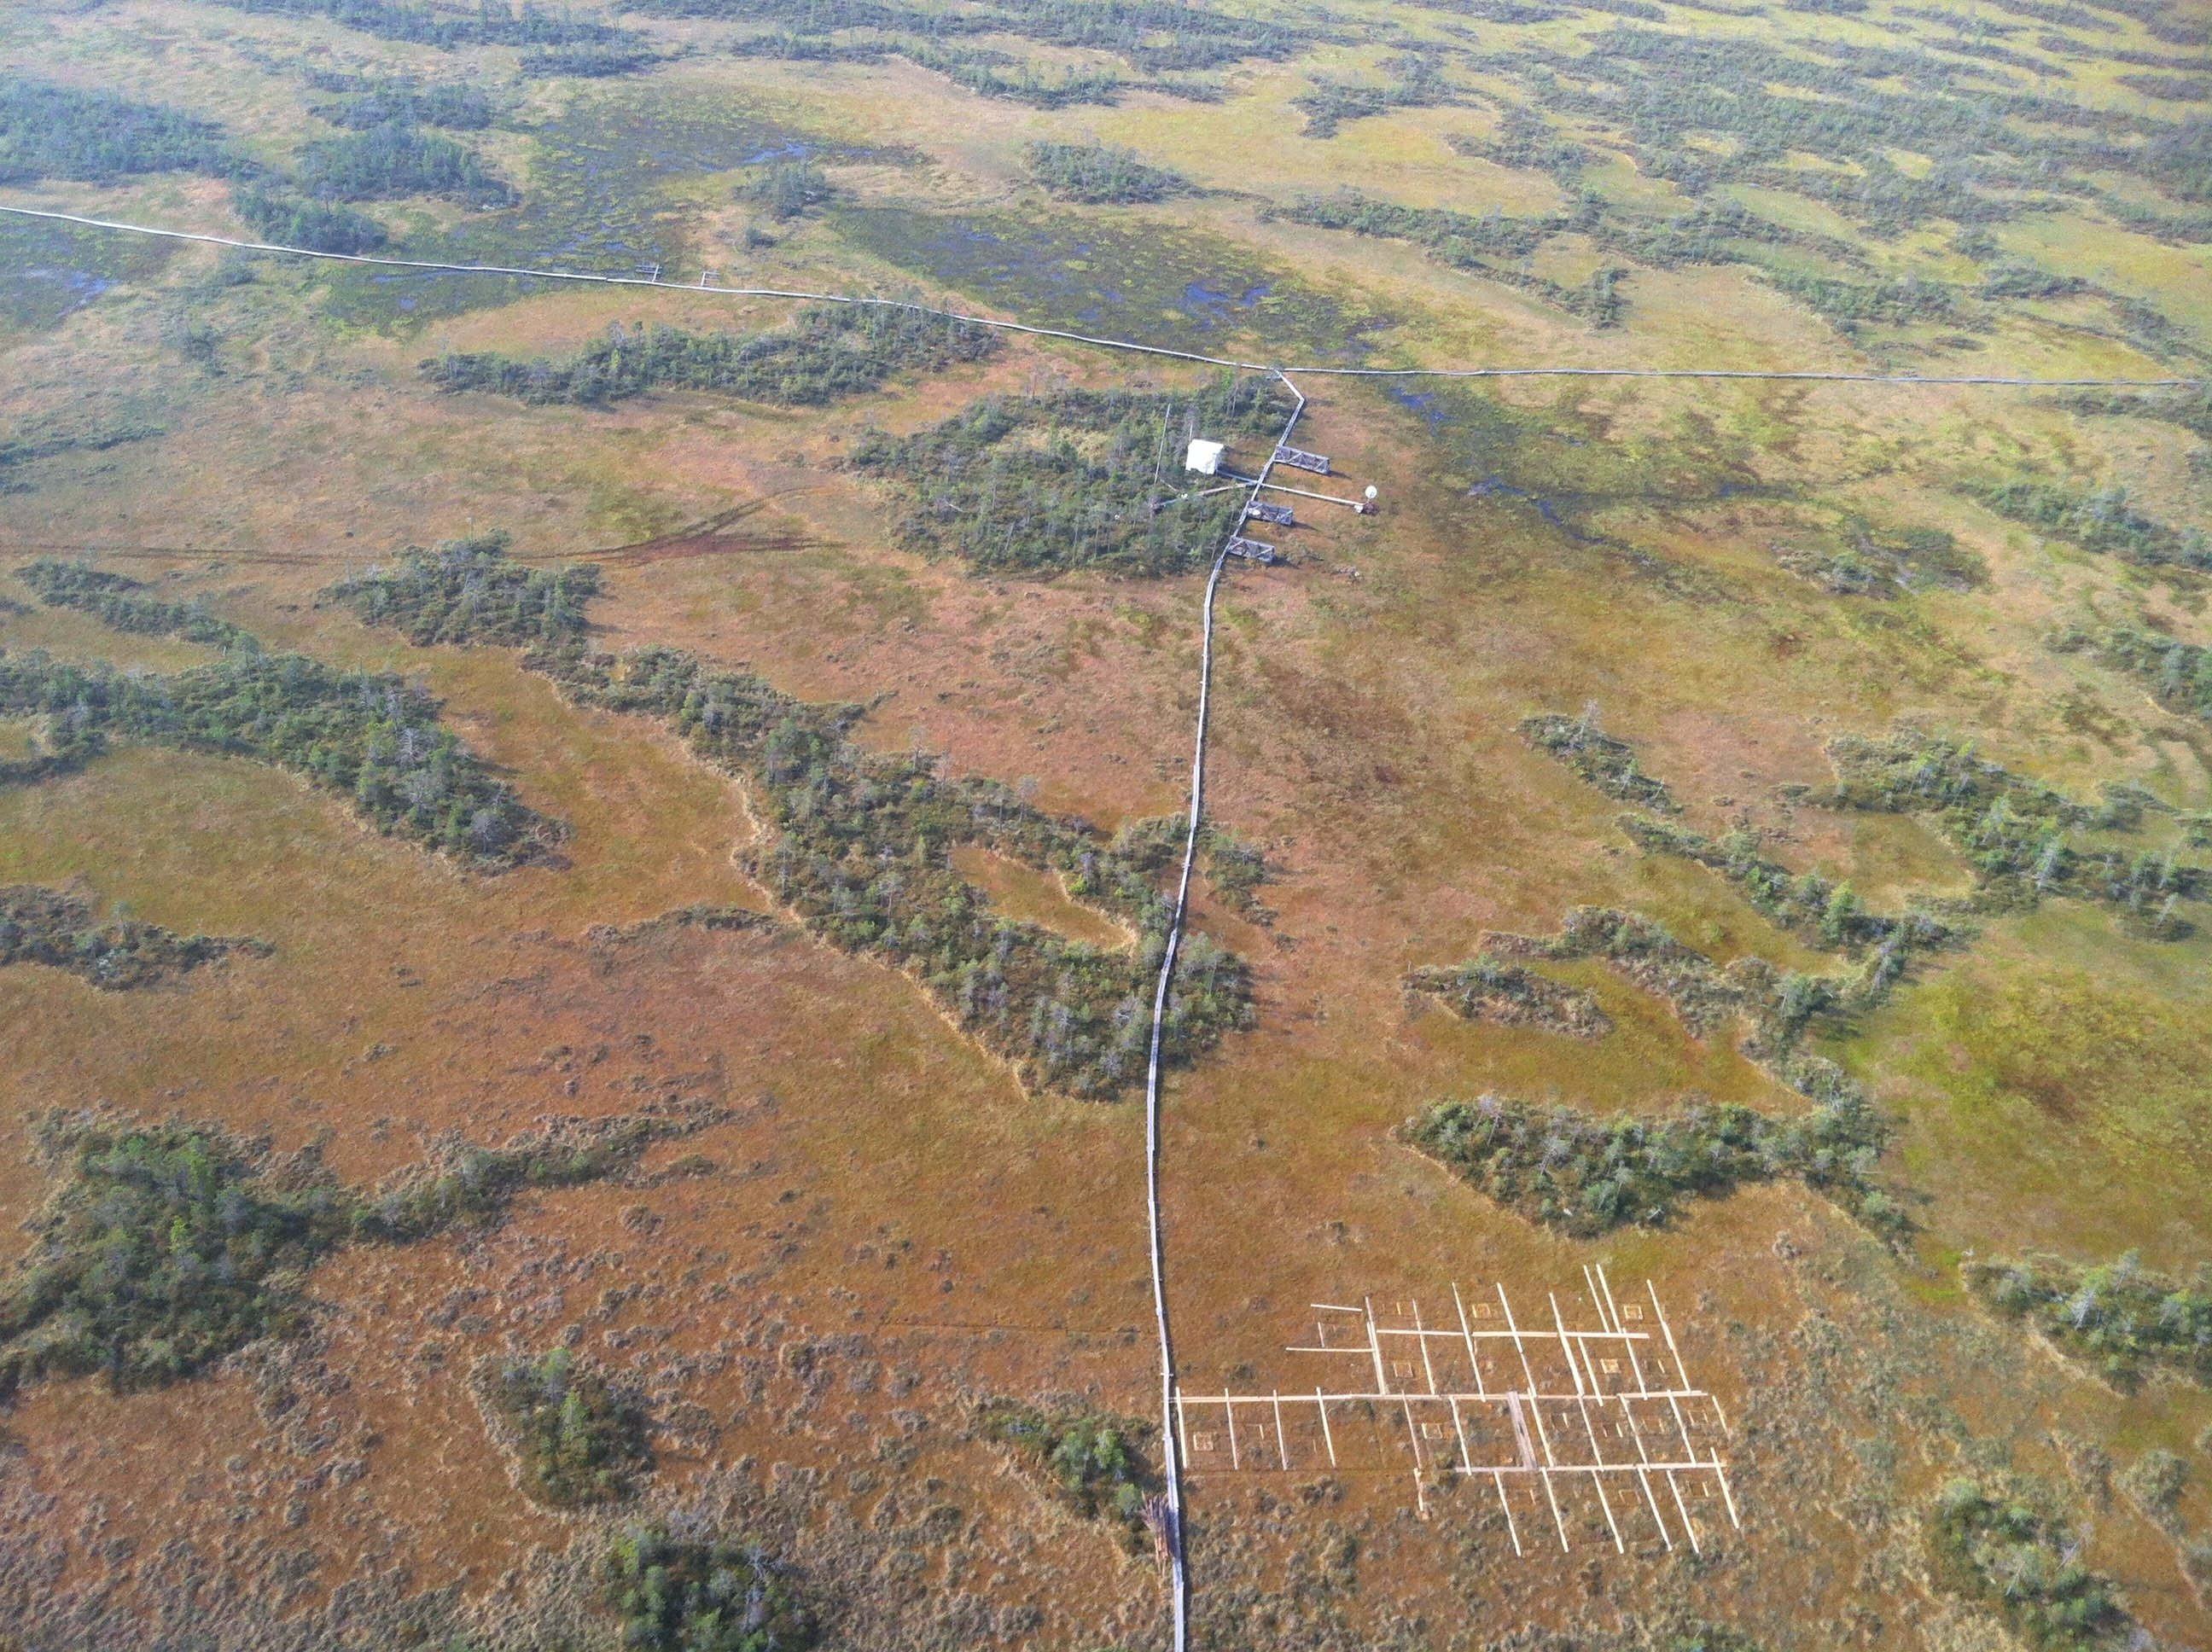 The importance of peat bogs environmental sciences essay